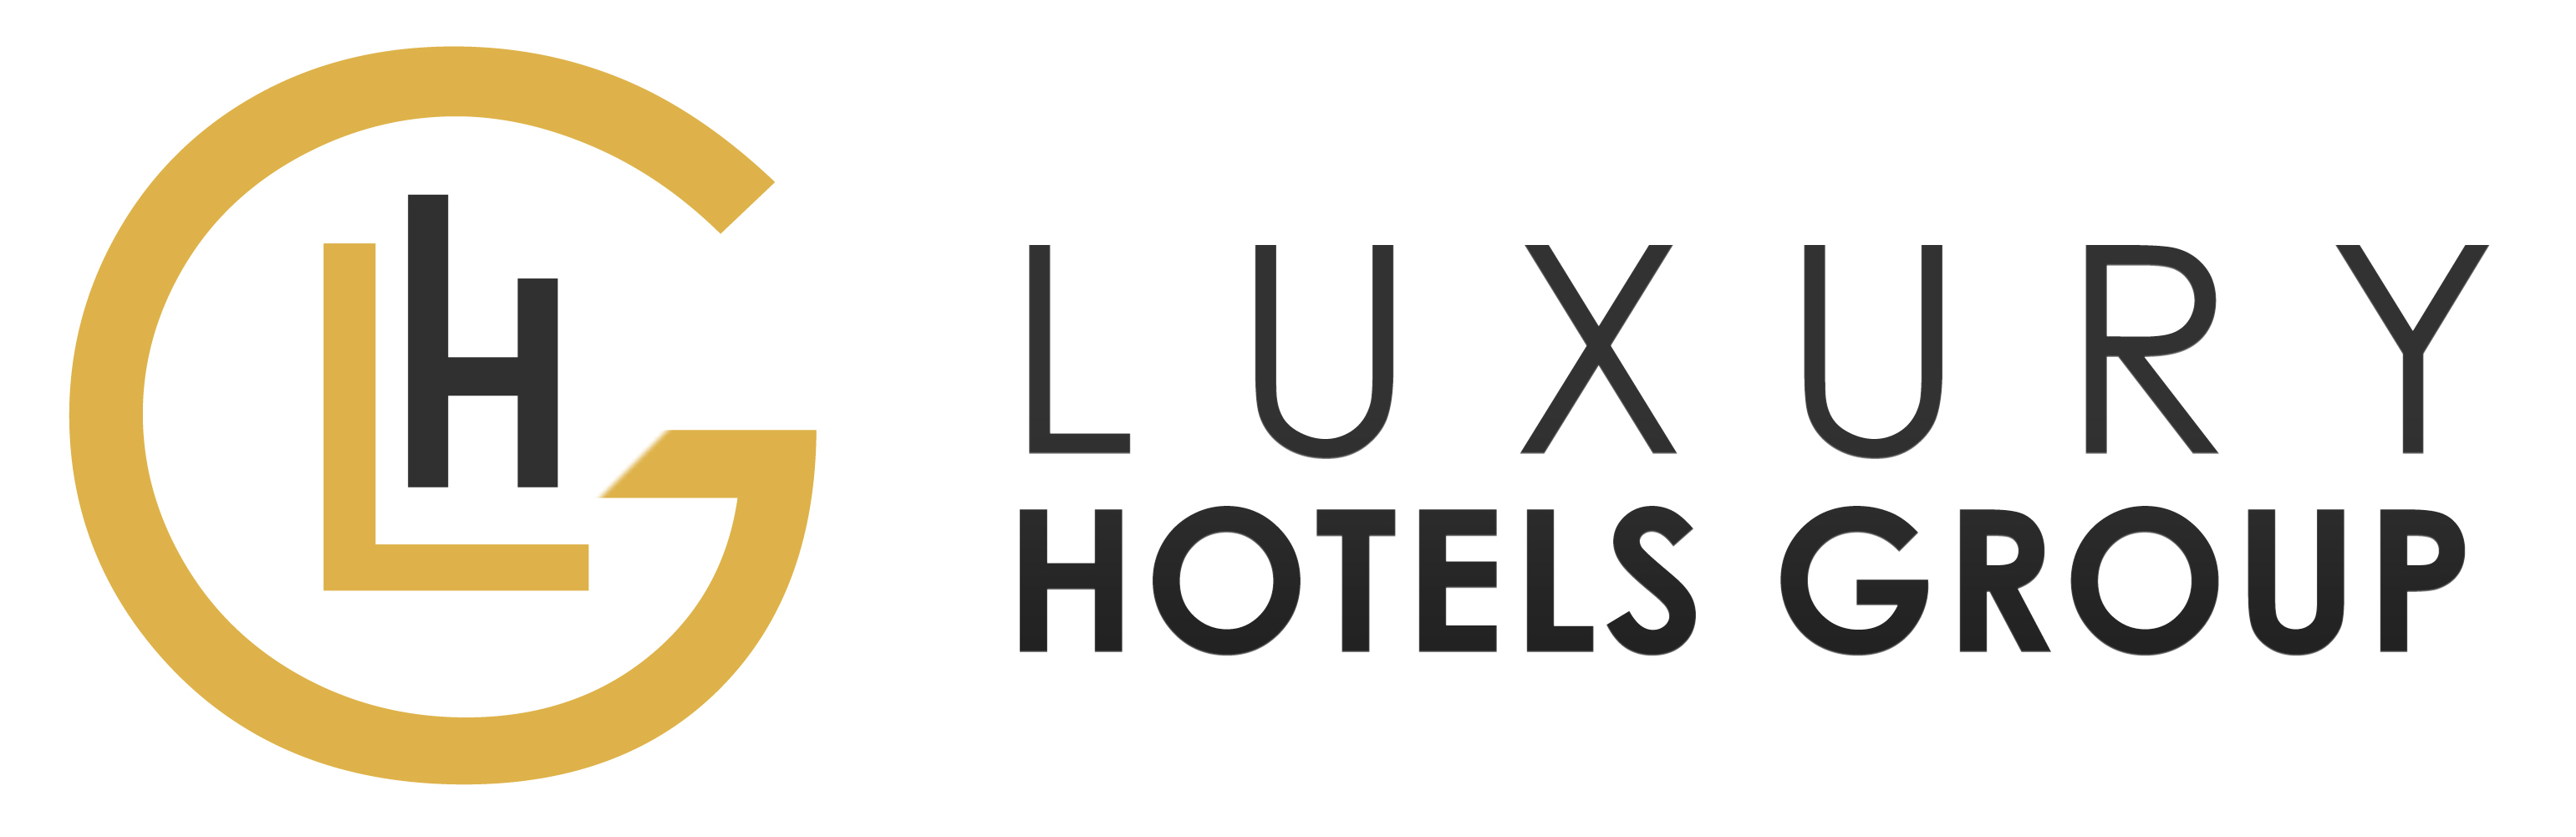 luxury hotels group review celebrity radio by alex belfield